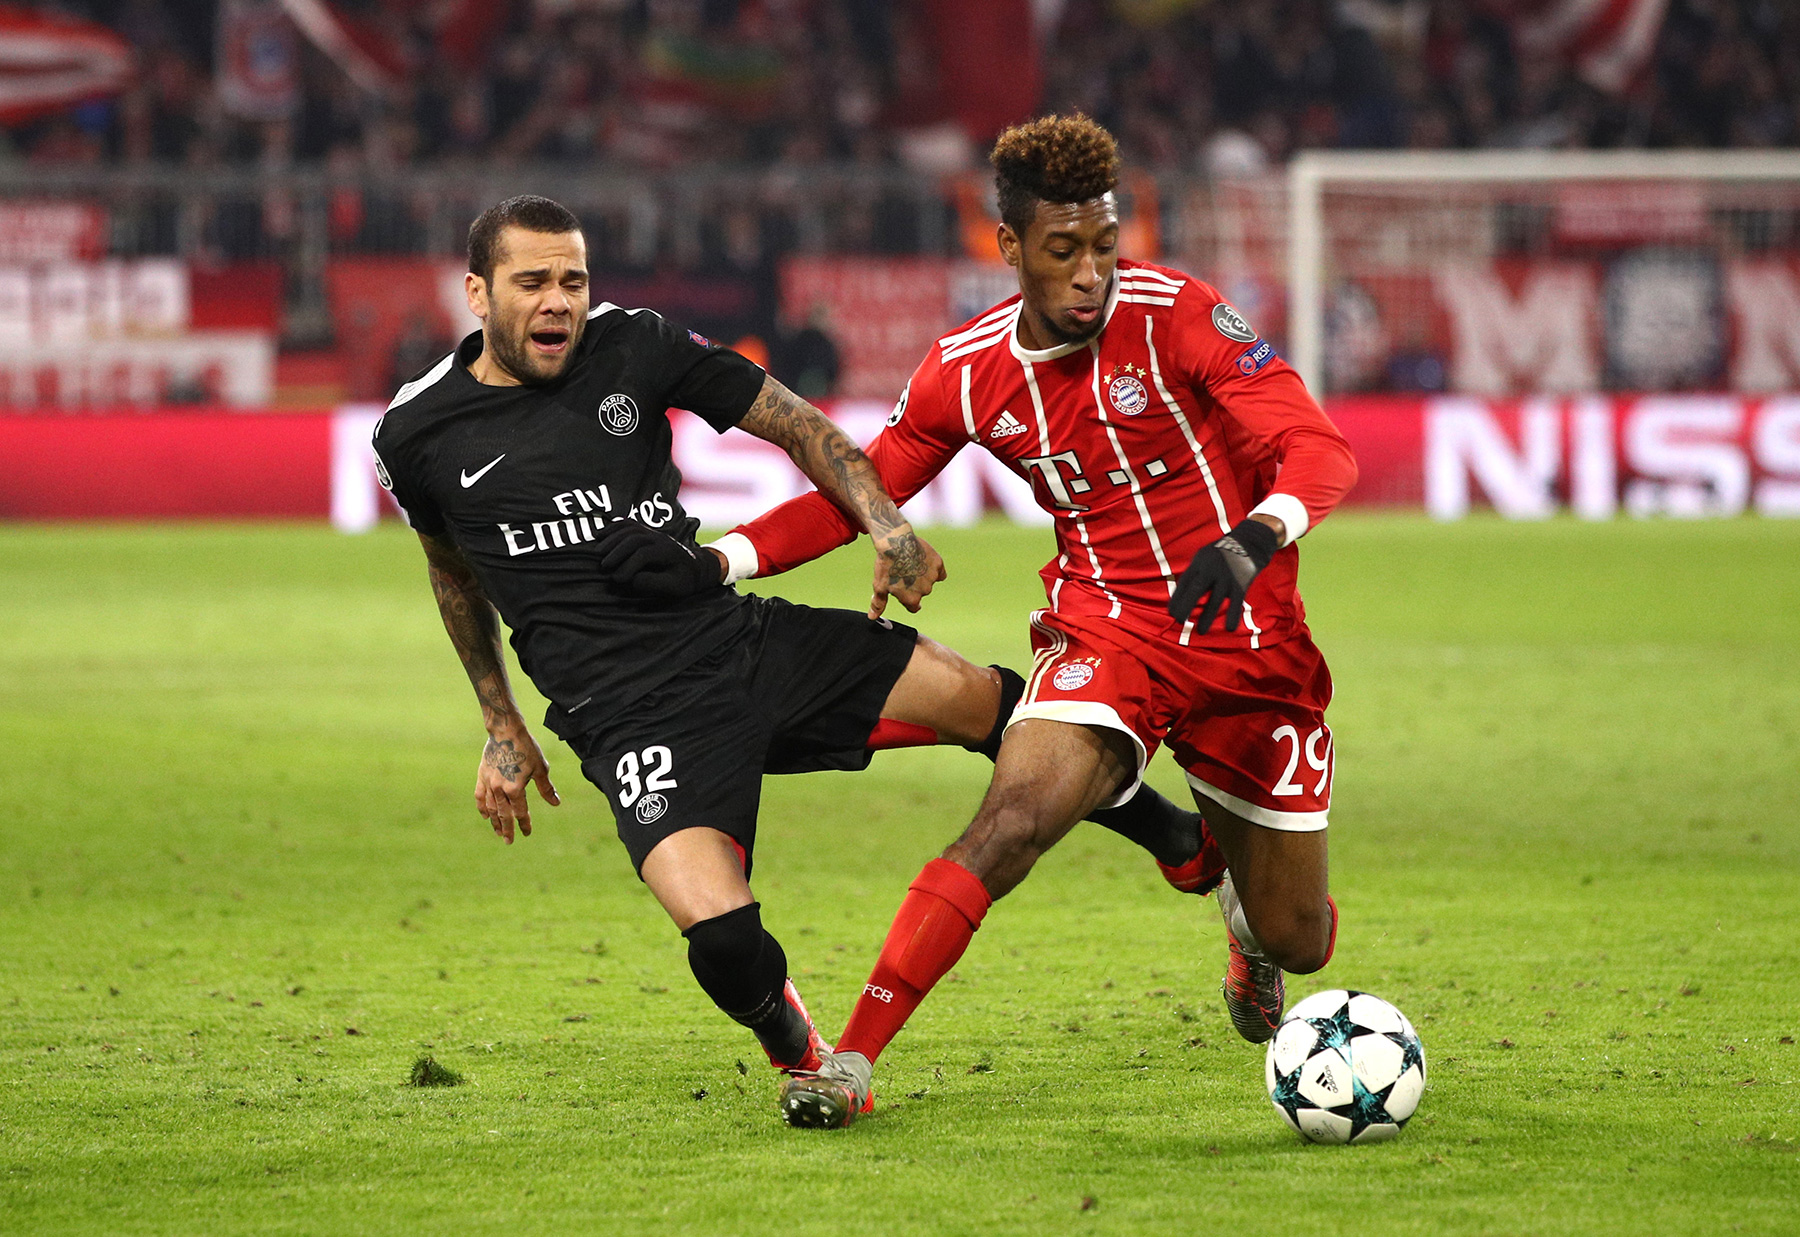 Player Ratings: Bayern Dismantle PSG in Champions League - PSG Talk